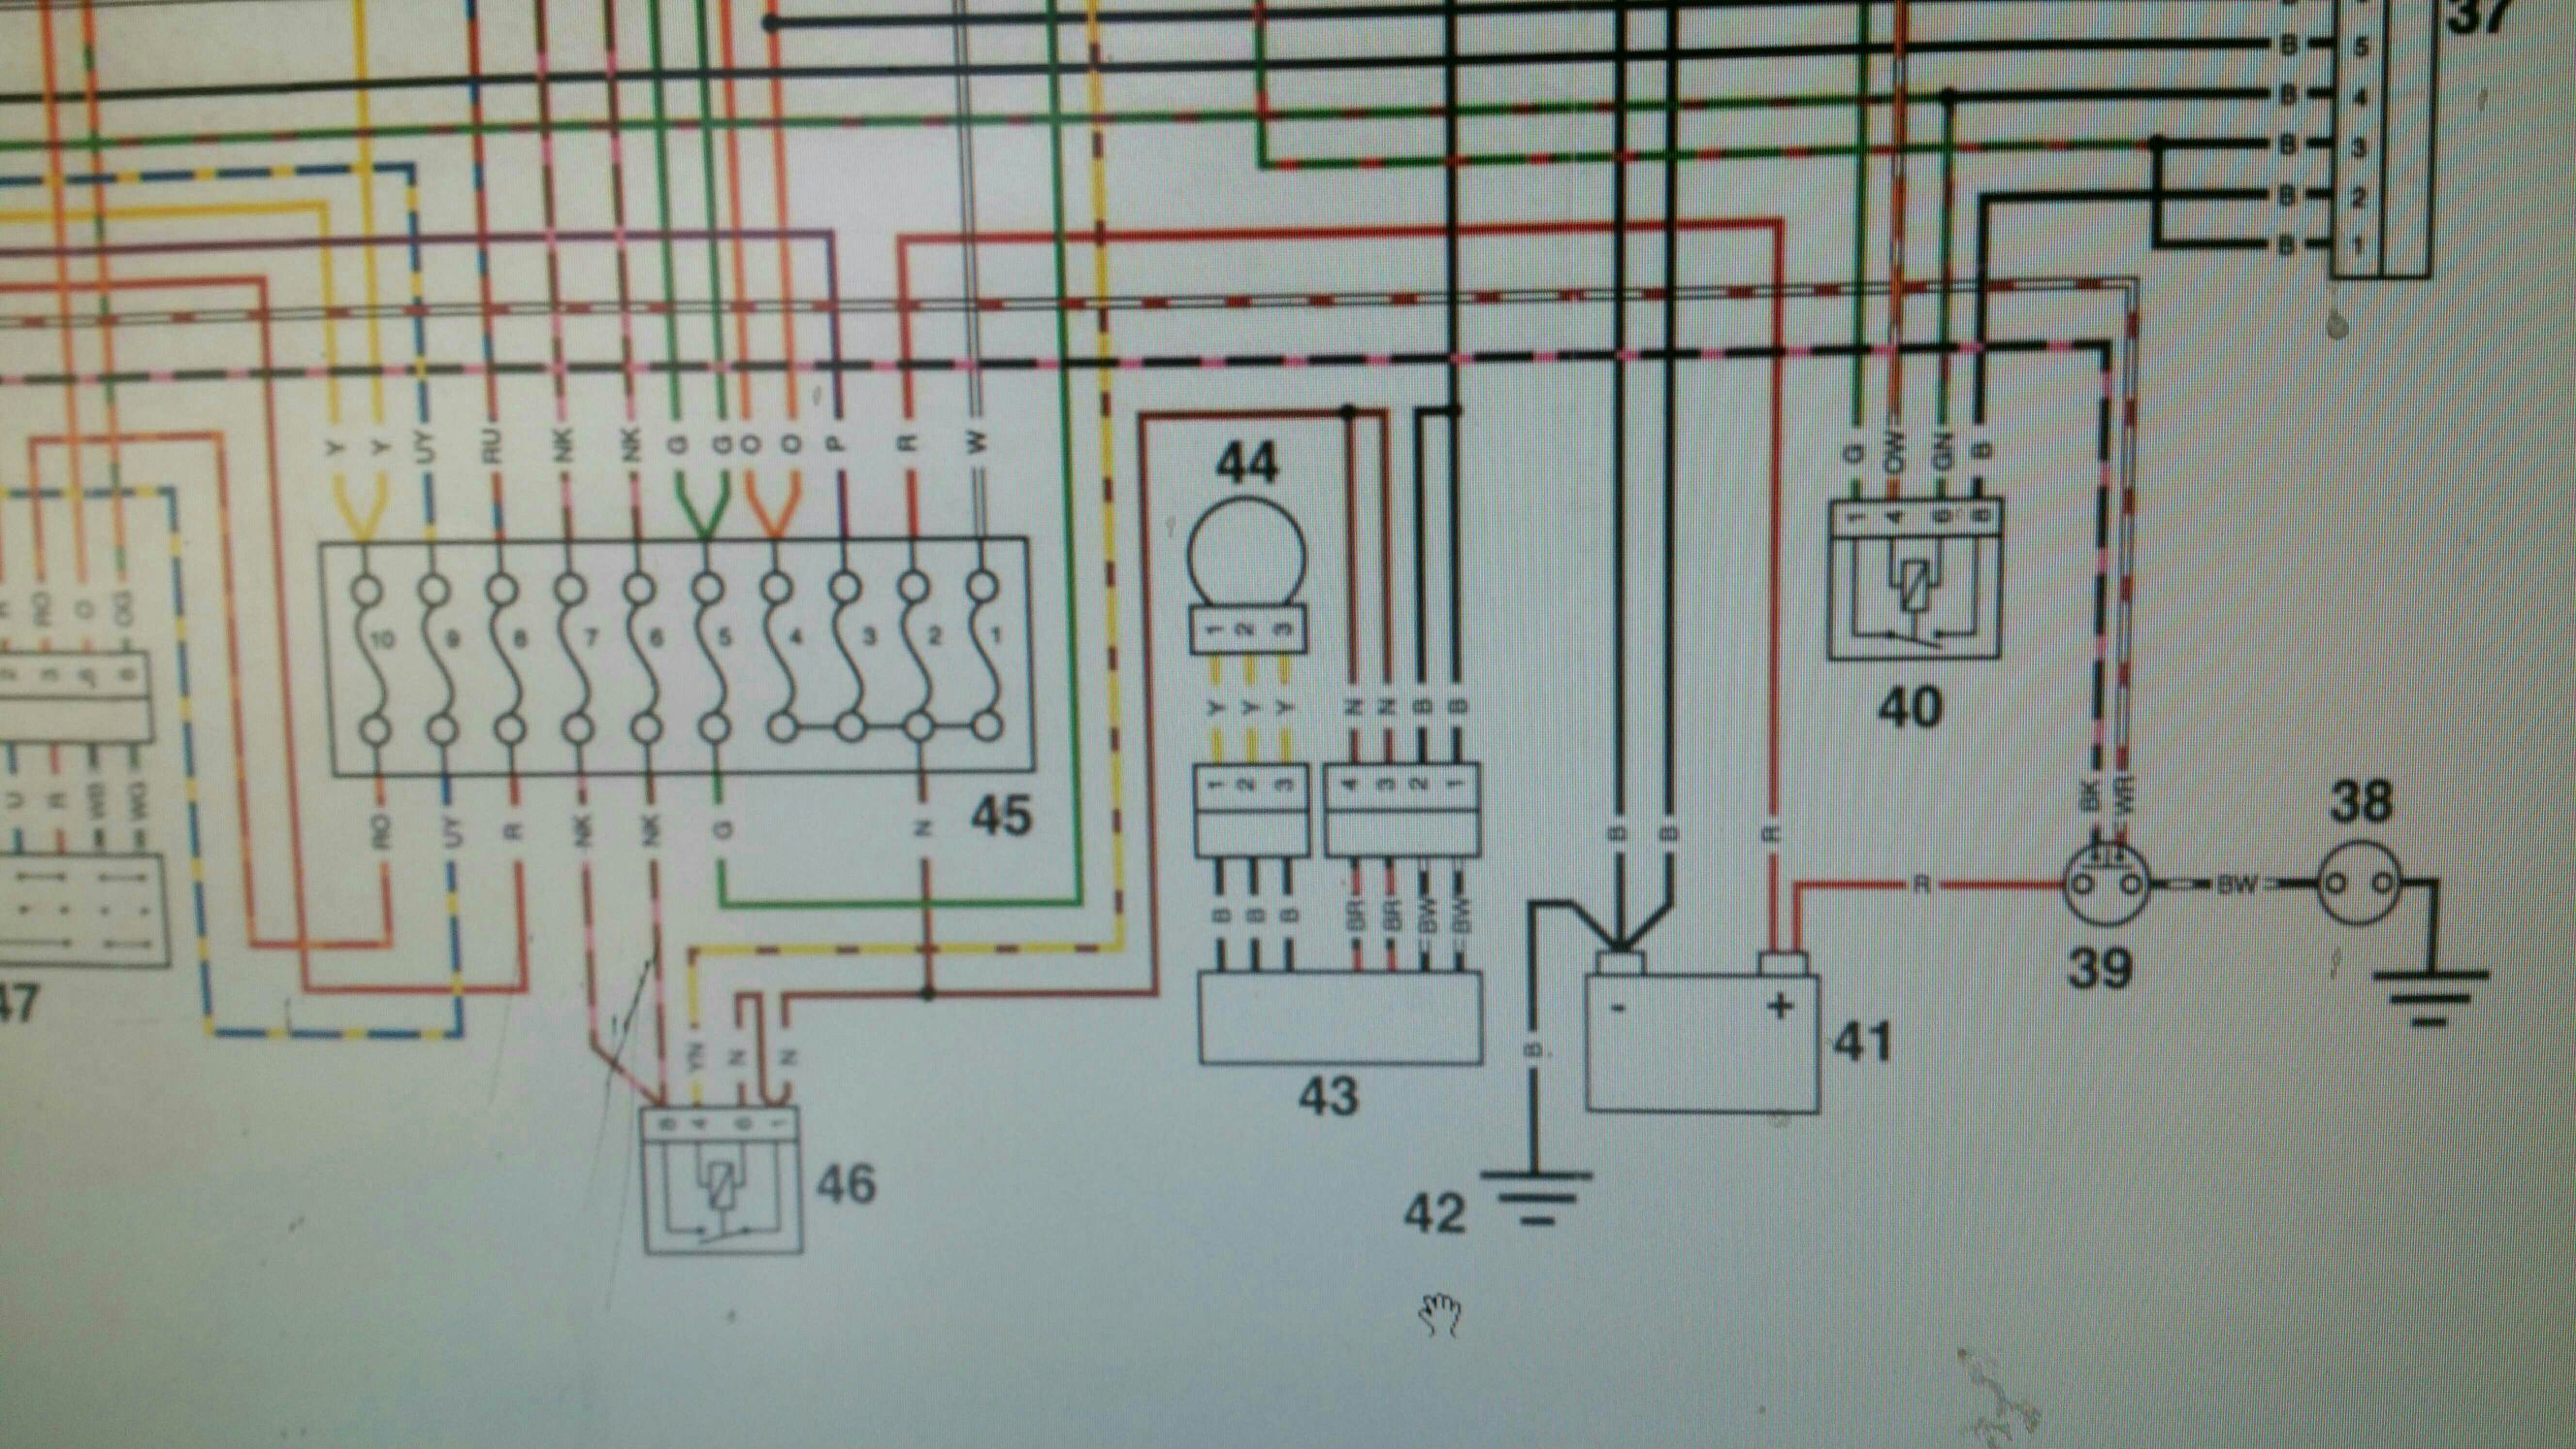 Sparx Wiring Diagram For Lights - DATA Wiring Diagrams •